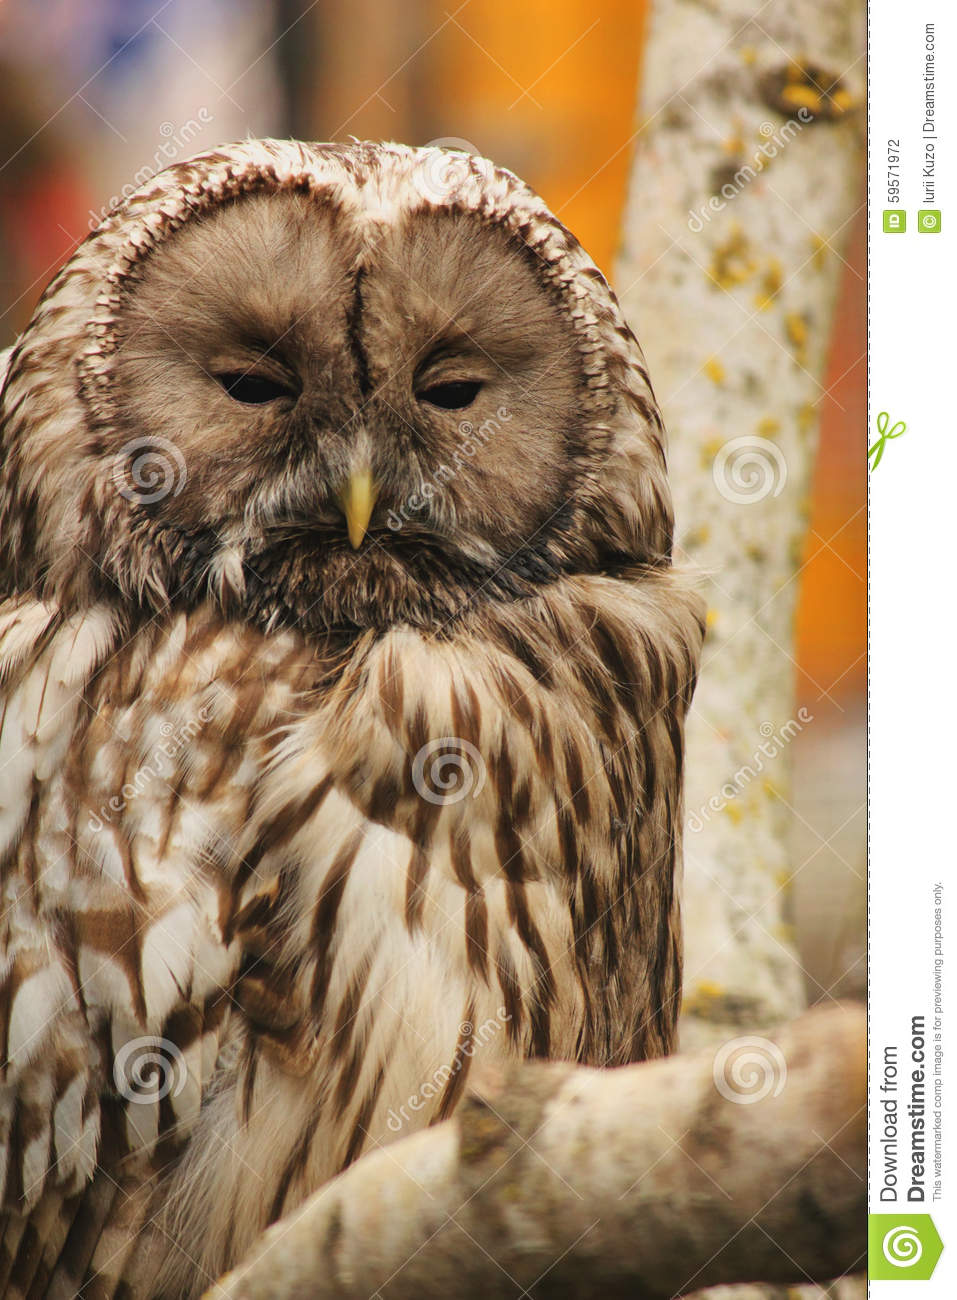 Owl As Symbol Of Wisdom And Knowledge Stock Photo Image Of